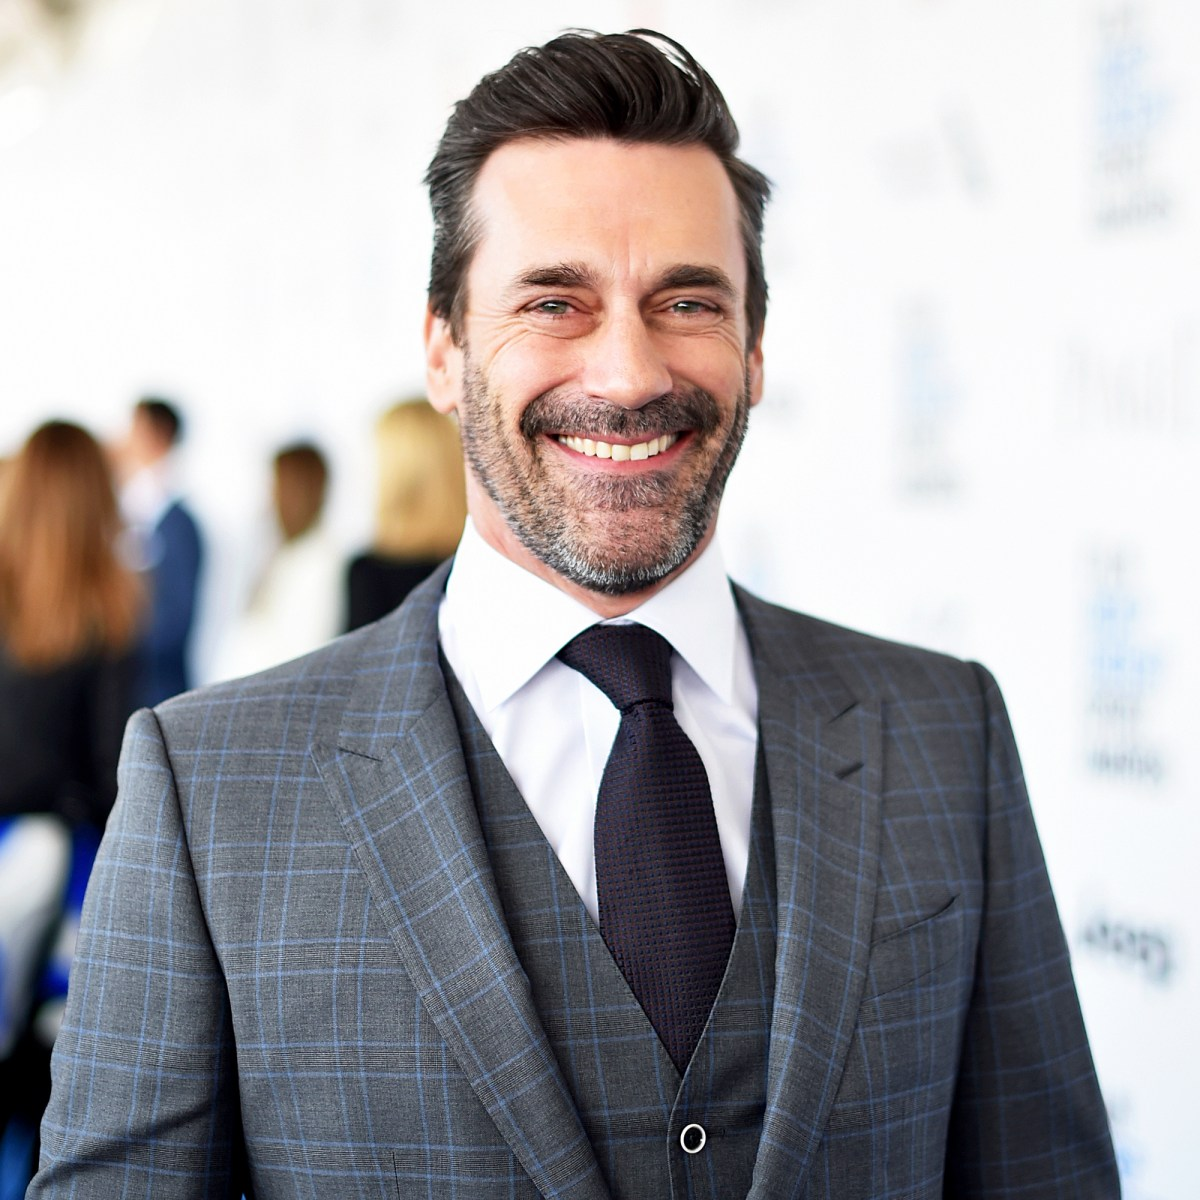 Jon Hamm attends the 2017 Film Independent Spirit Awards at Santa Monica Pier on February 25, 2017 in Santa Monica, California.